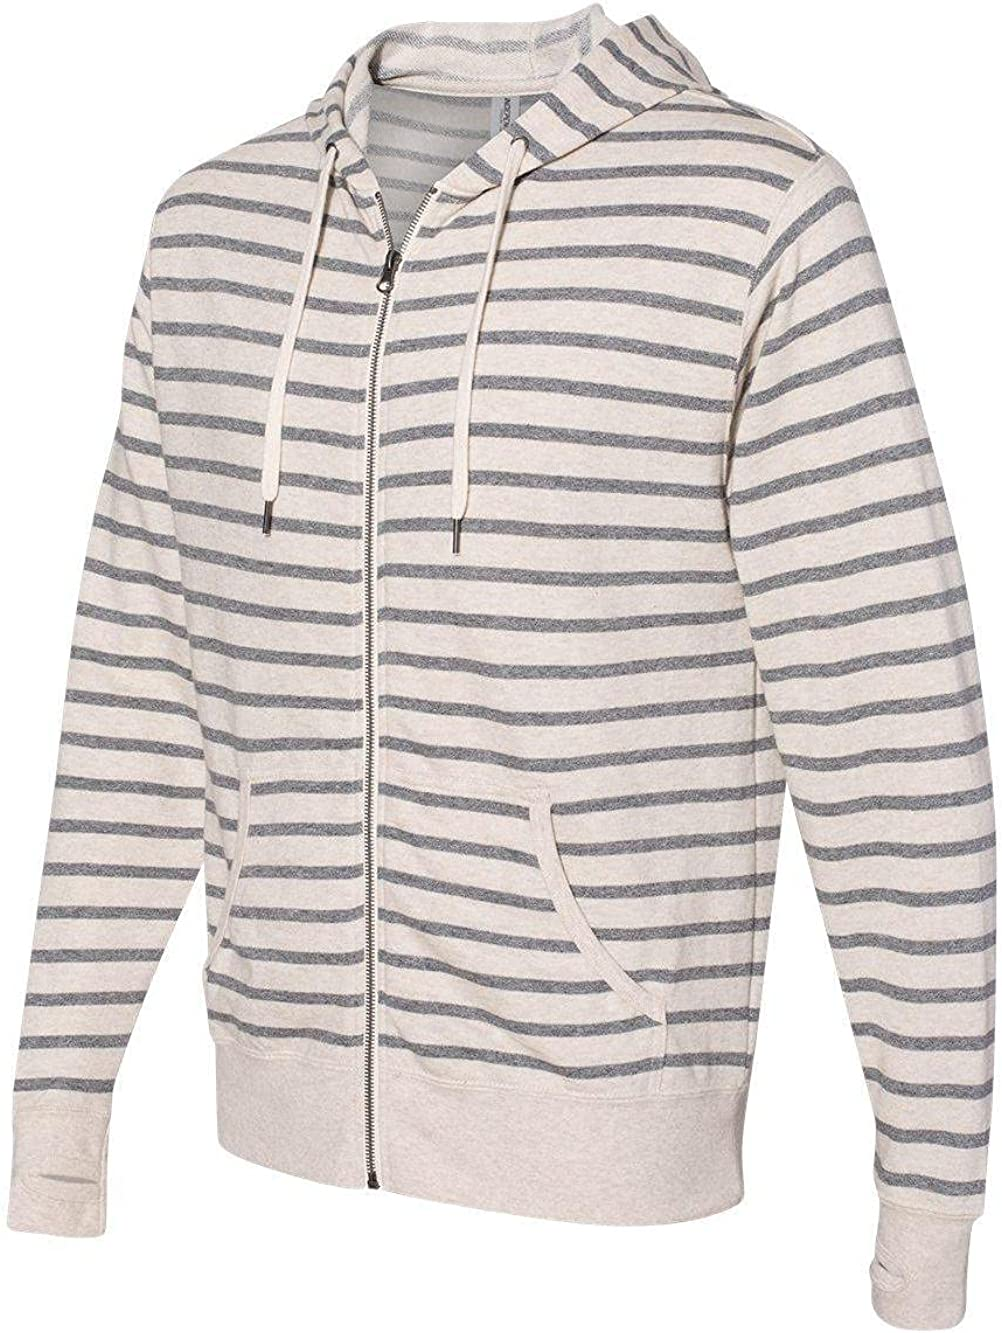 Independent Trading Co. - Unisex Heathered French Terry Full-Zip Hooded Sweatshirt - PRM90HTZ - 2XL - Oatmeal Heather/ Salt & Pepper Stripe